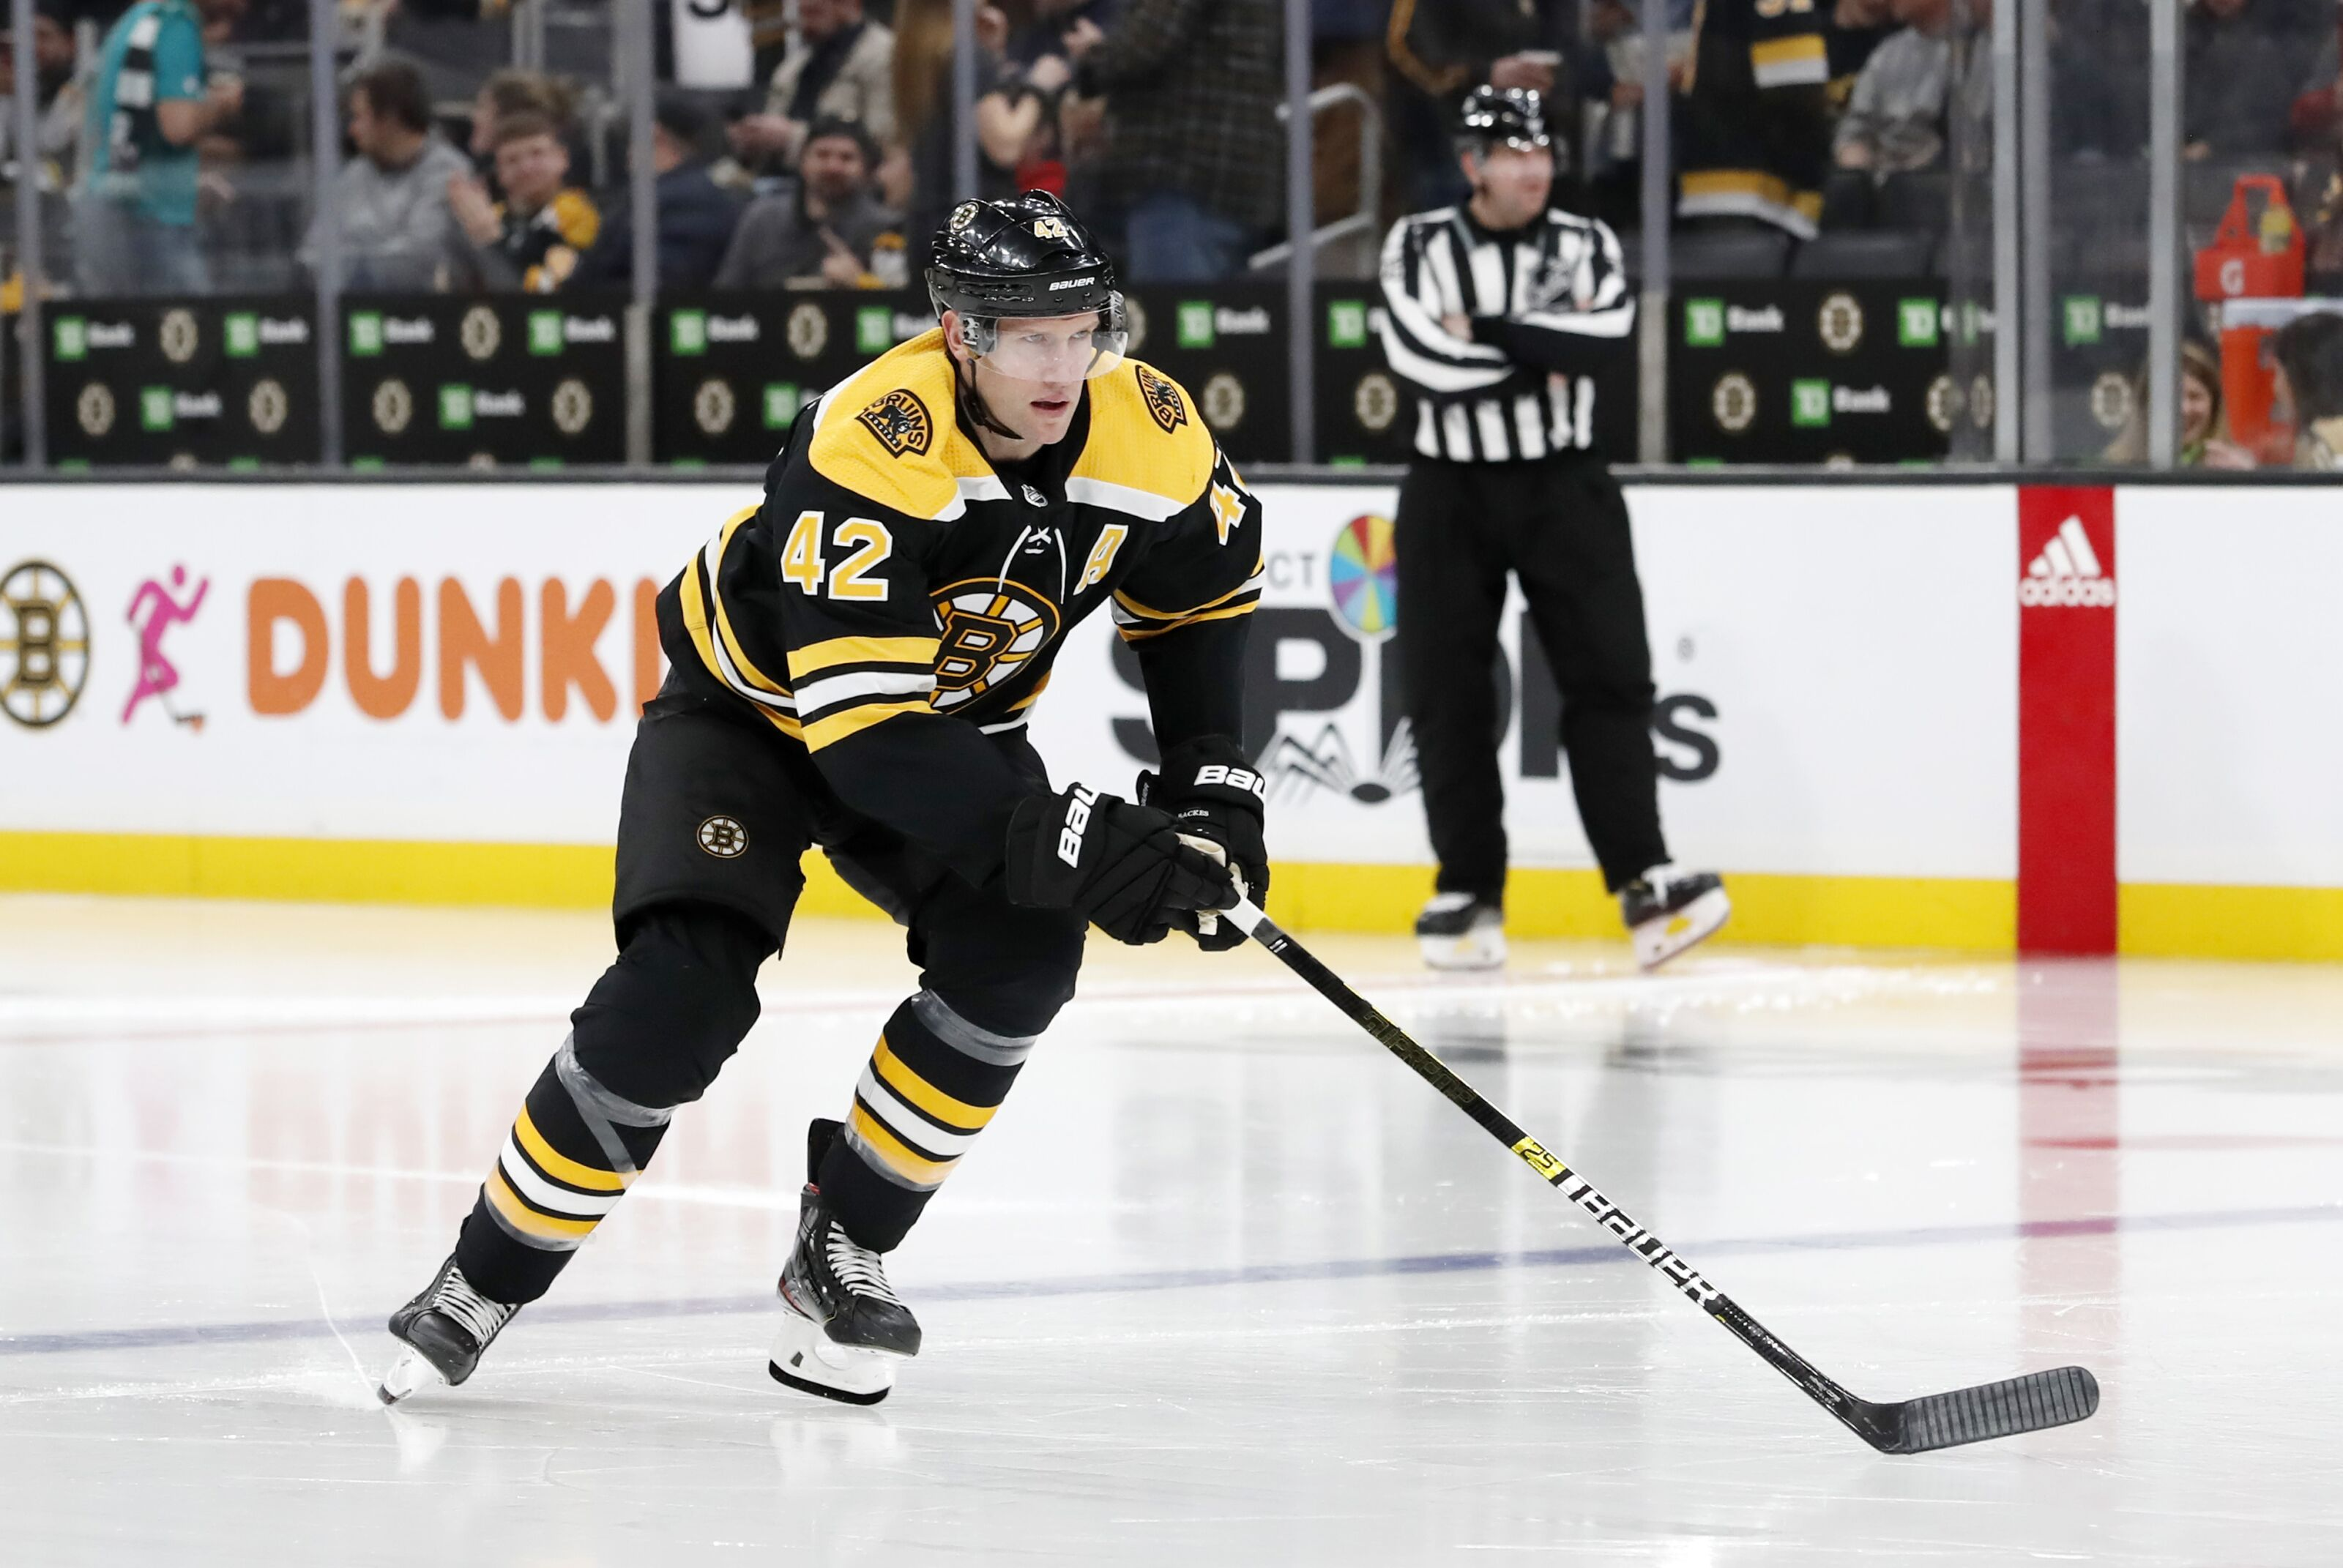 Boston Bruins: Does Don Sweeney have anything up his sleeve?